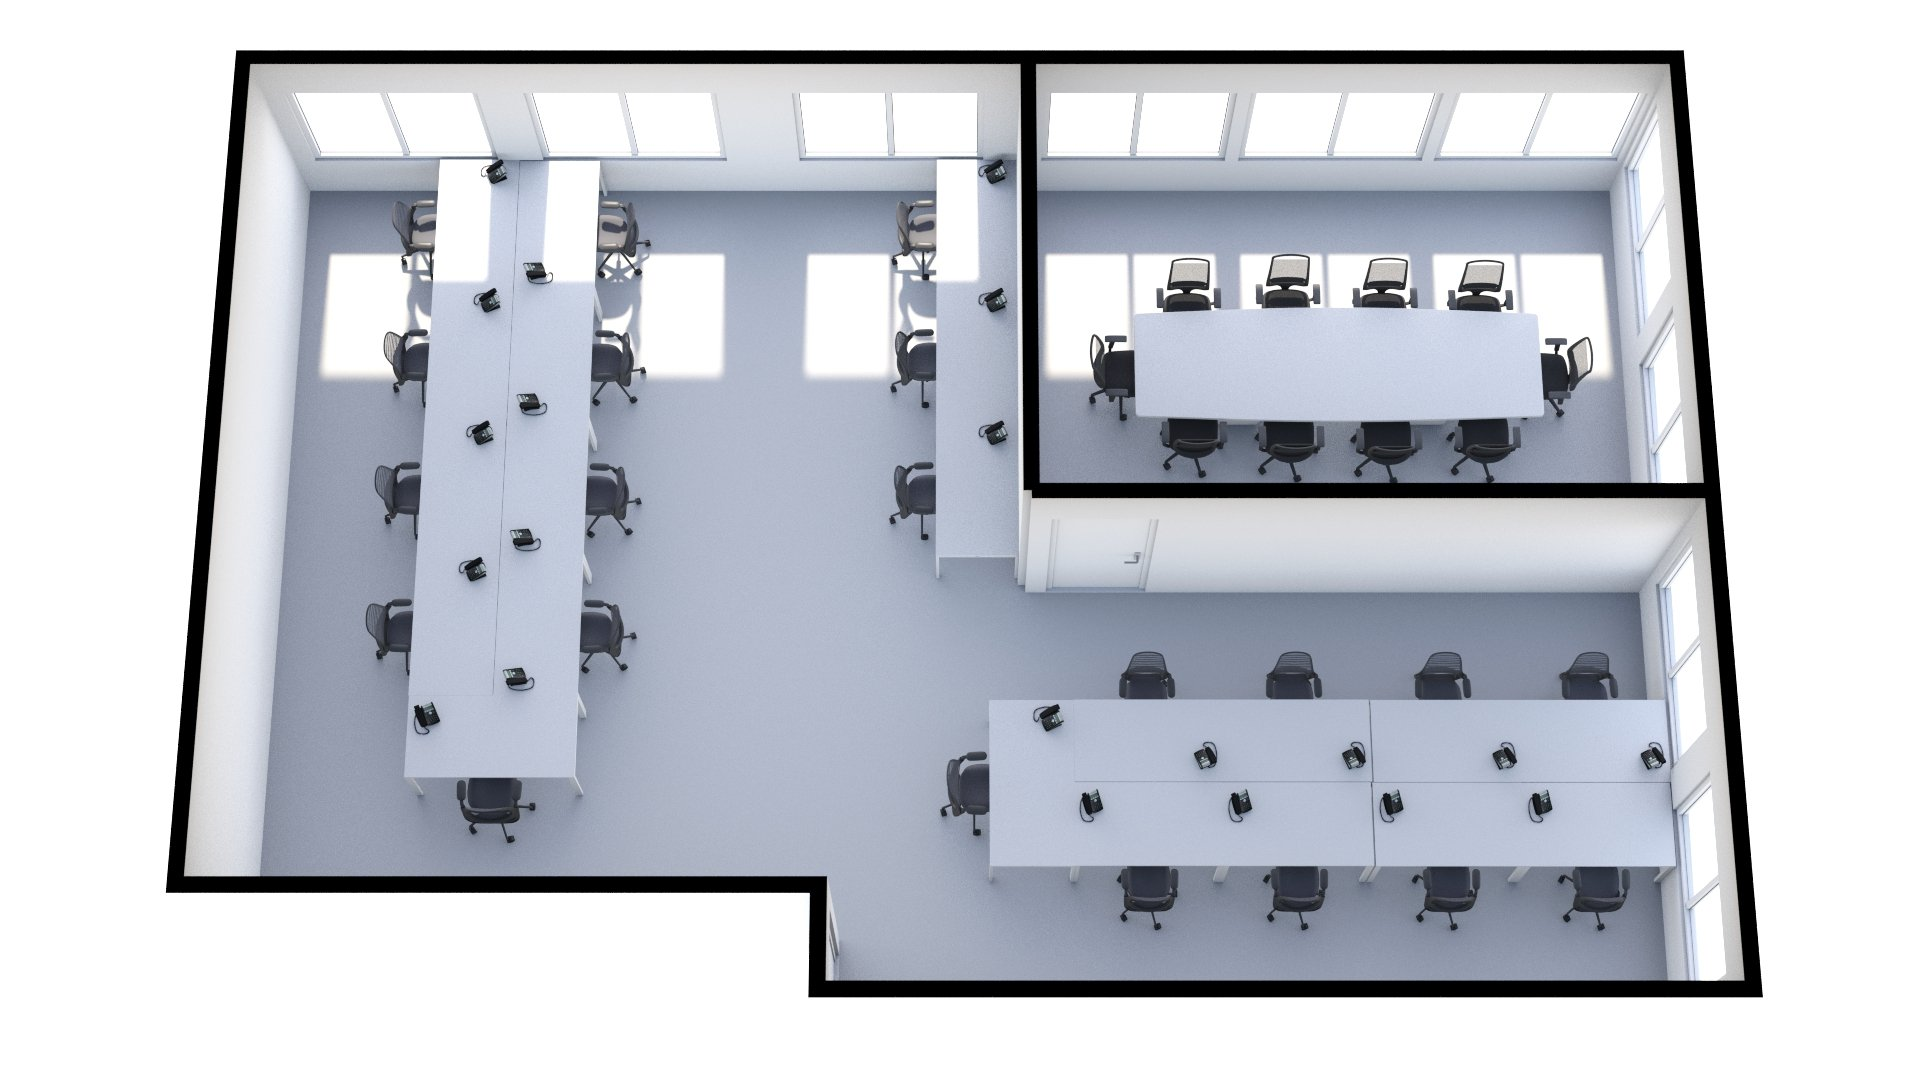 506-7 Floor Plan (3D) 21 Desks